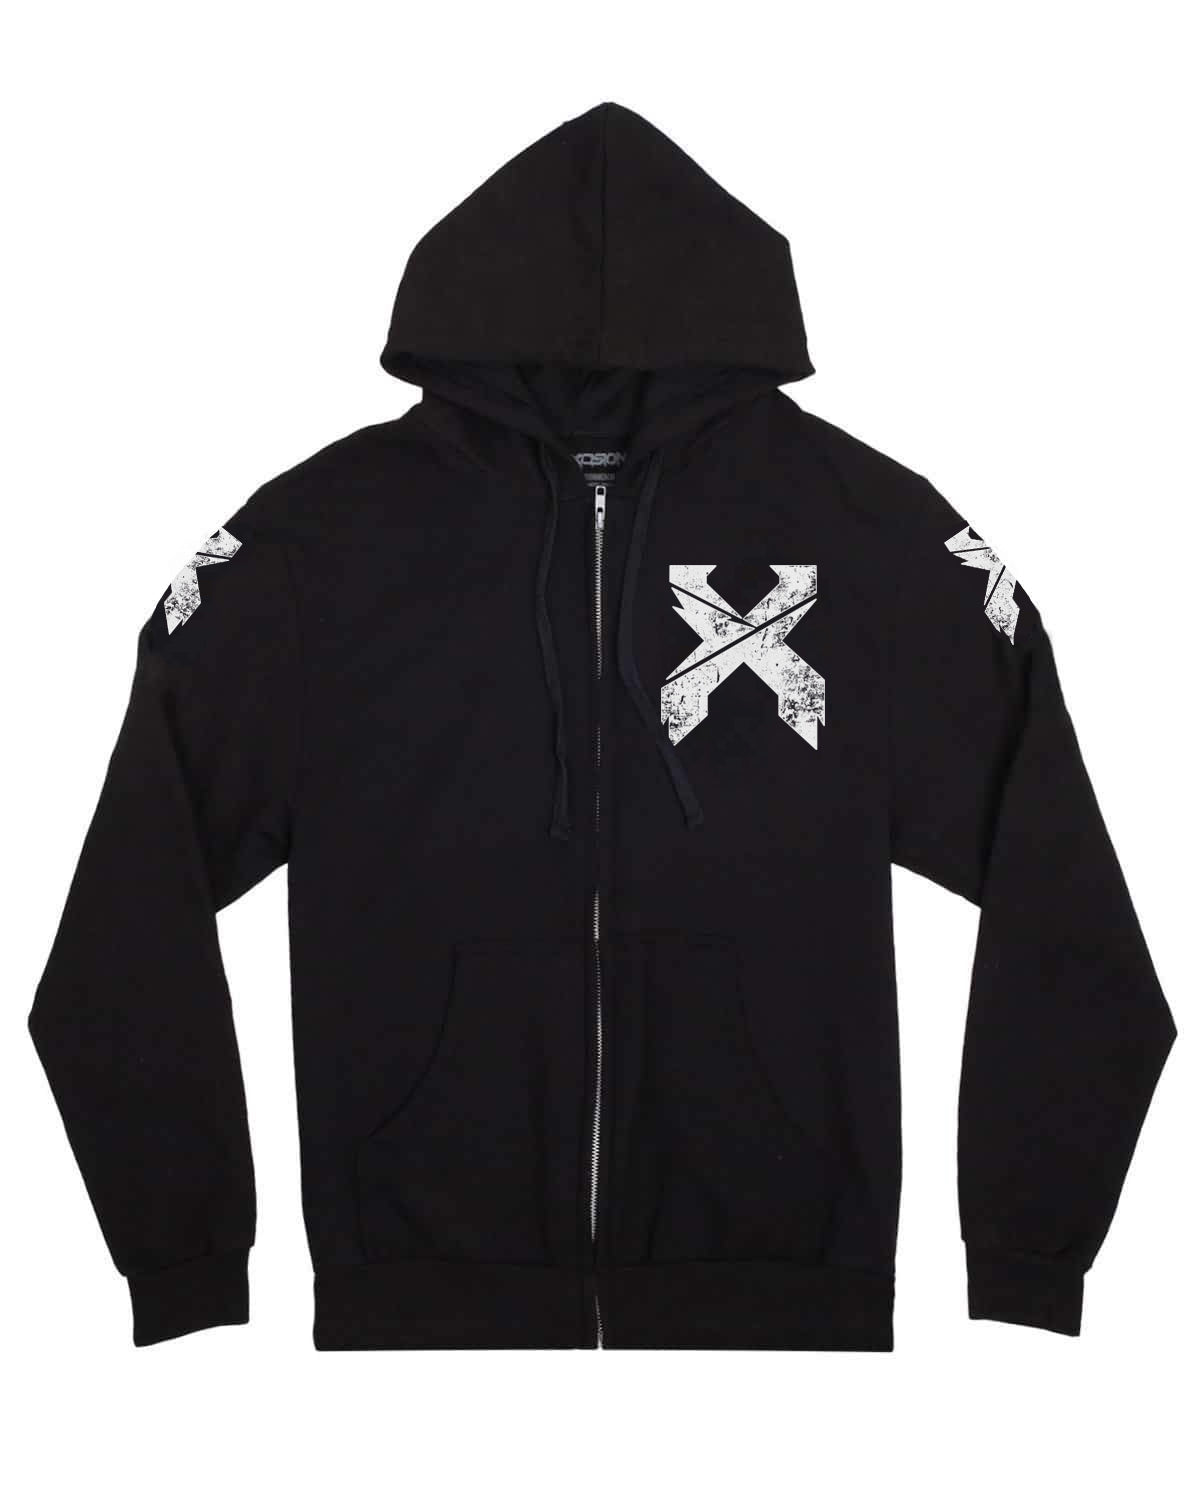 Excision 'Headbanger' 2.0 Unisex Zip-Up Hoodie